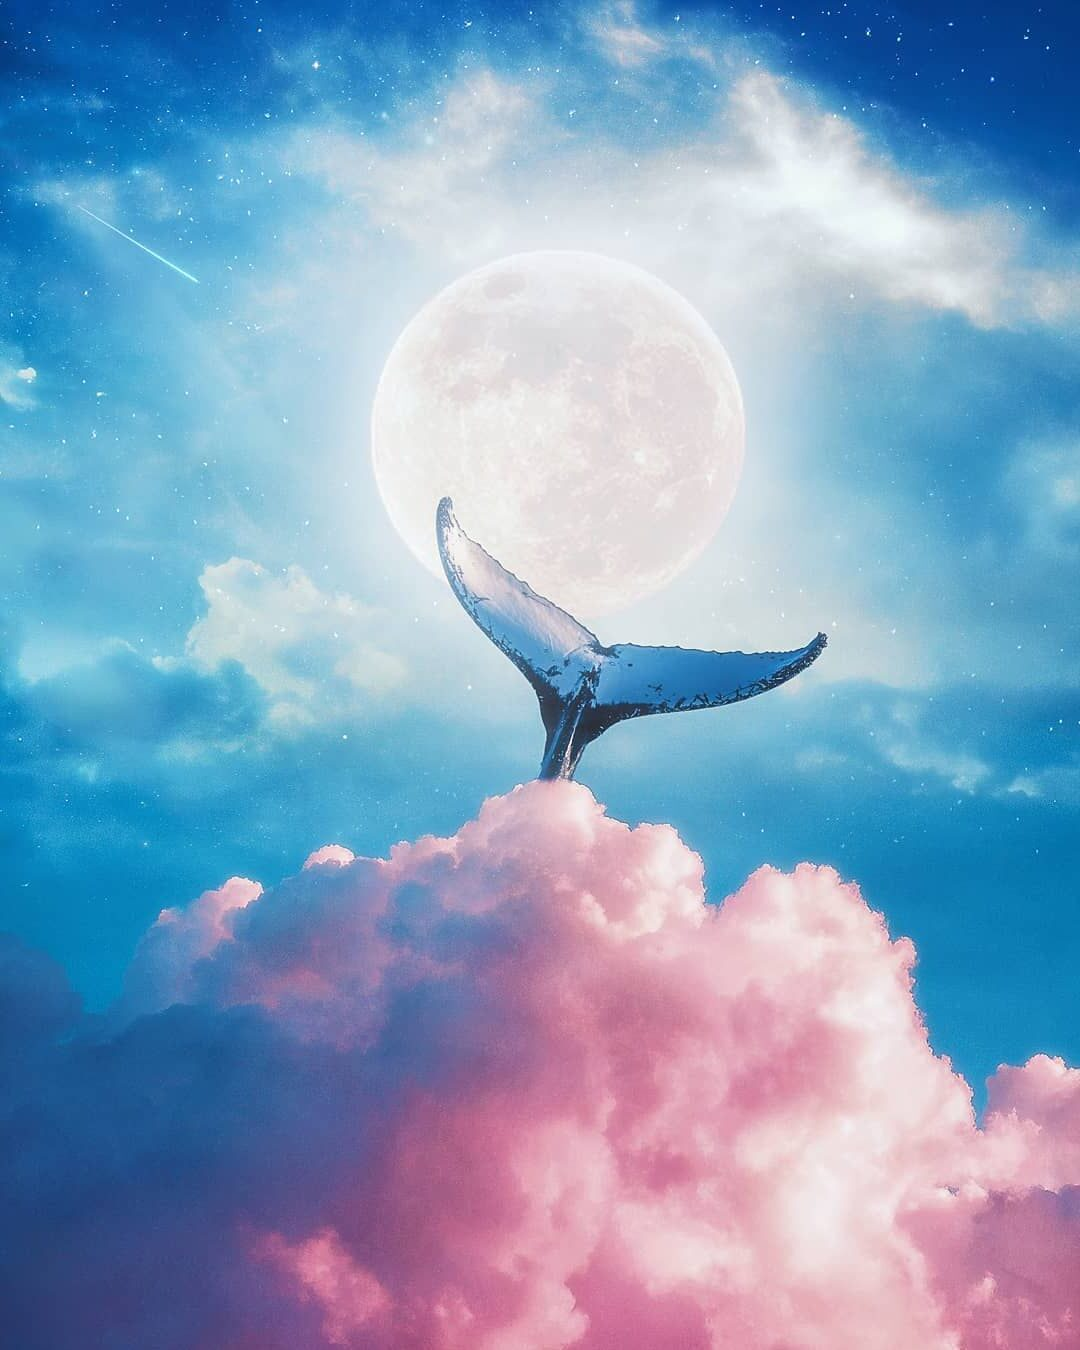 Photomanipulation Whale Tail by Psguy2026